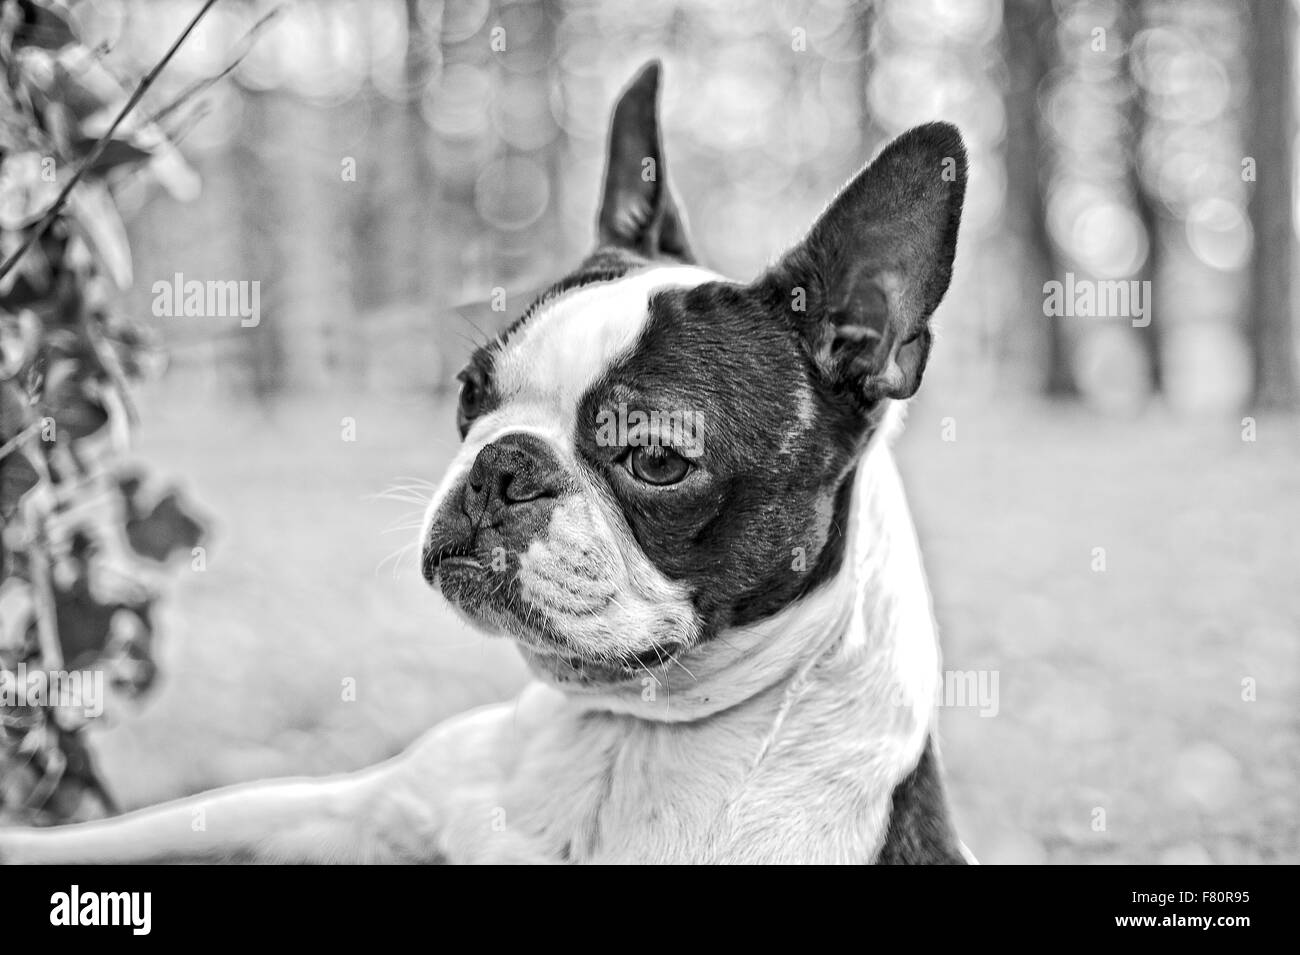 Boston terrier, bicolour dog in park with trees and grass - Stock Image